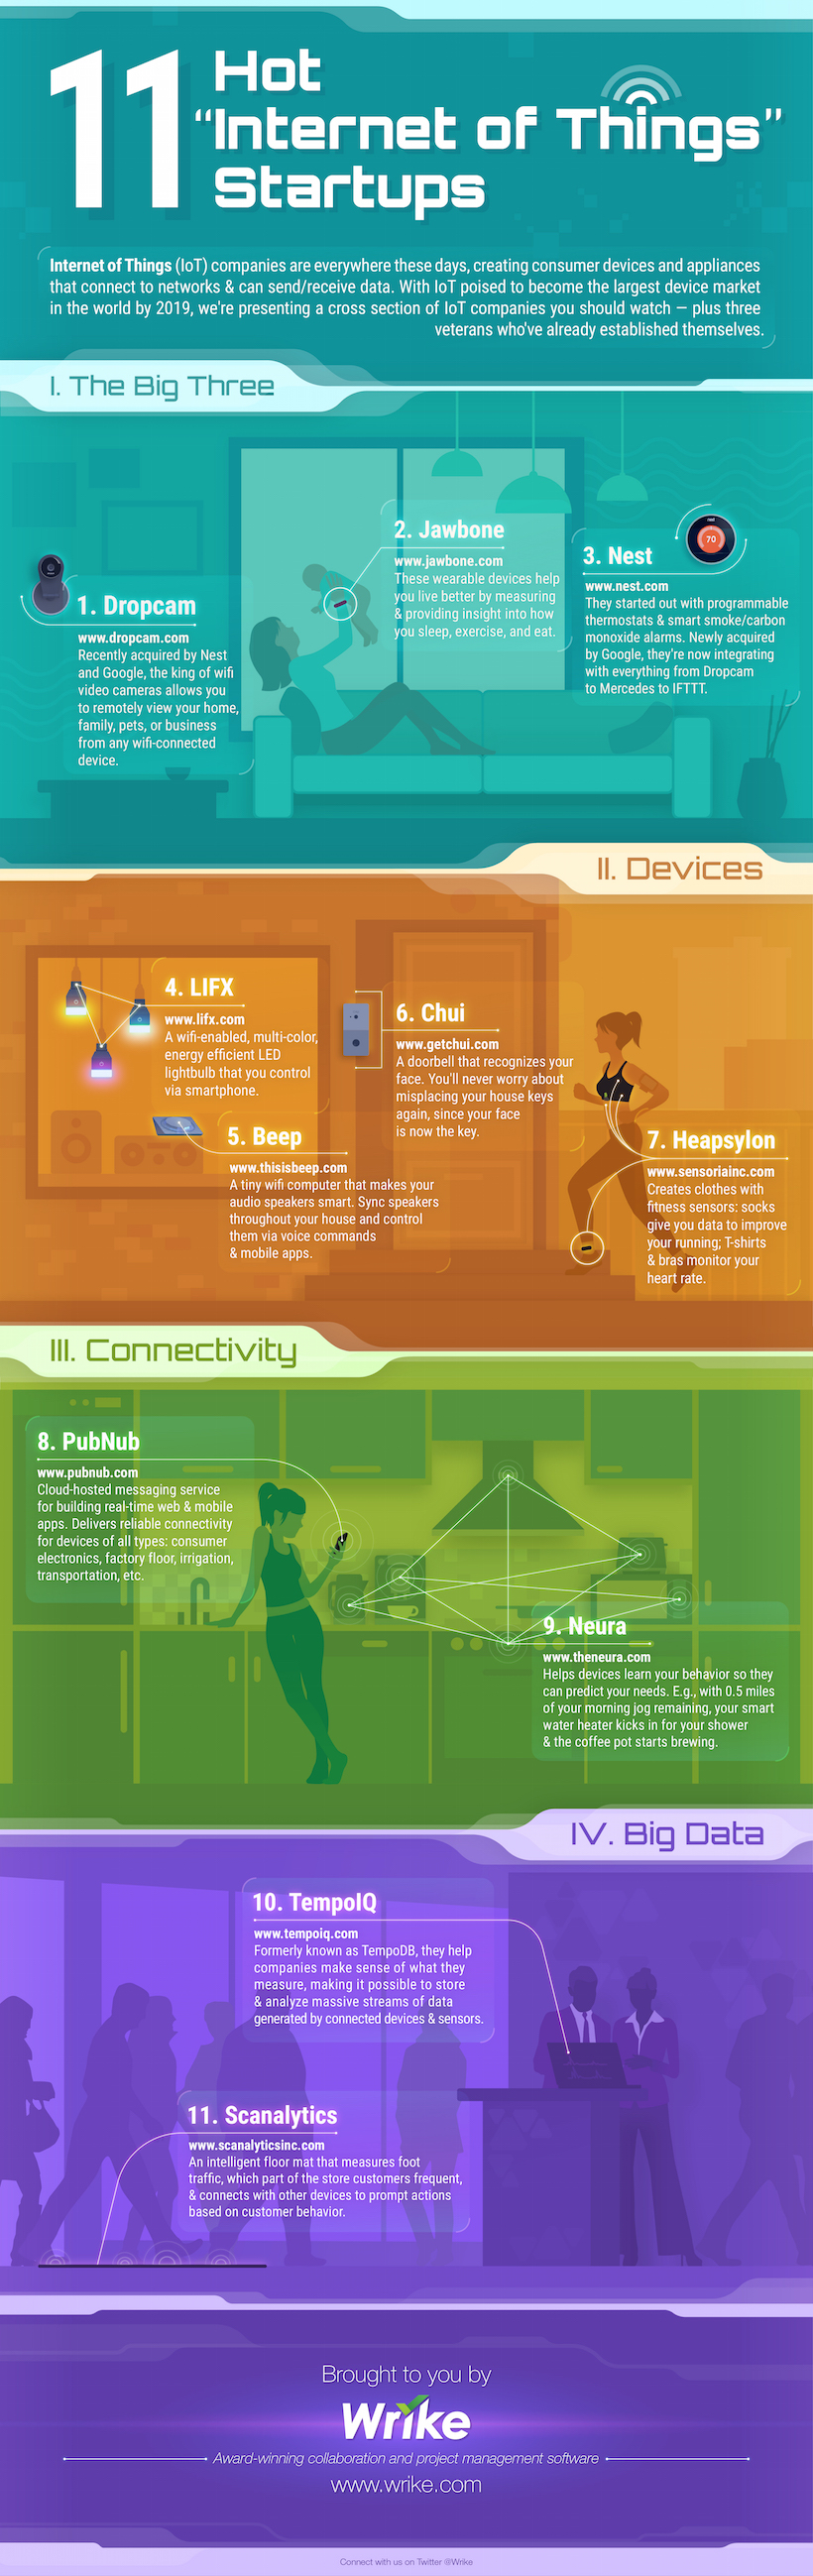 11 Internet of Things Startups to Watch (#Infographic)